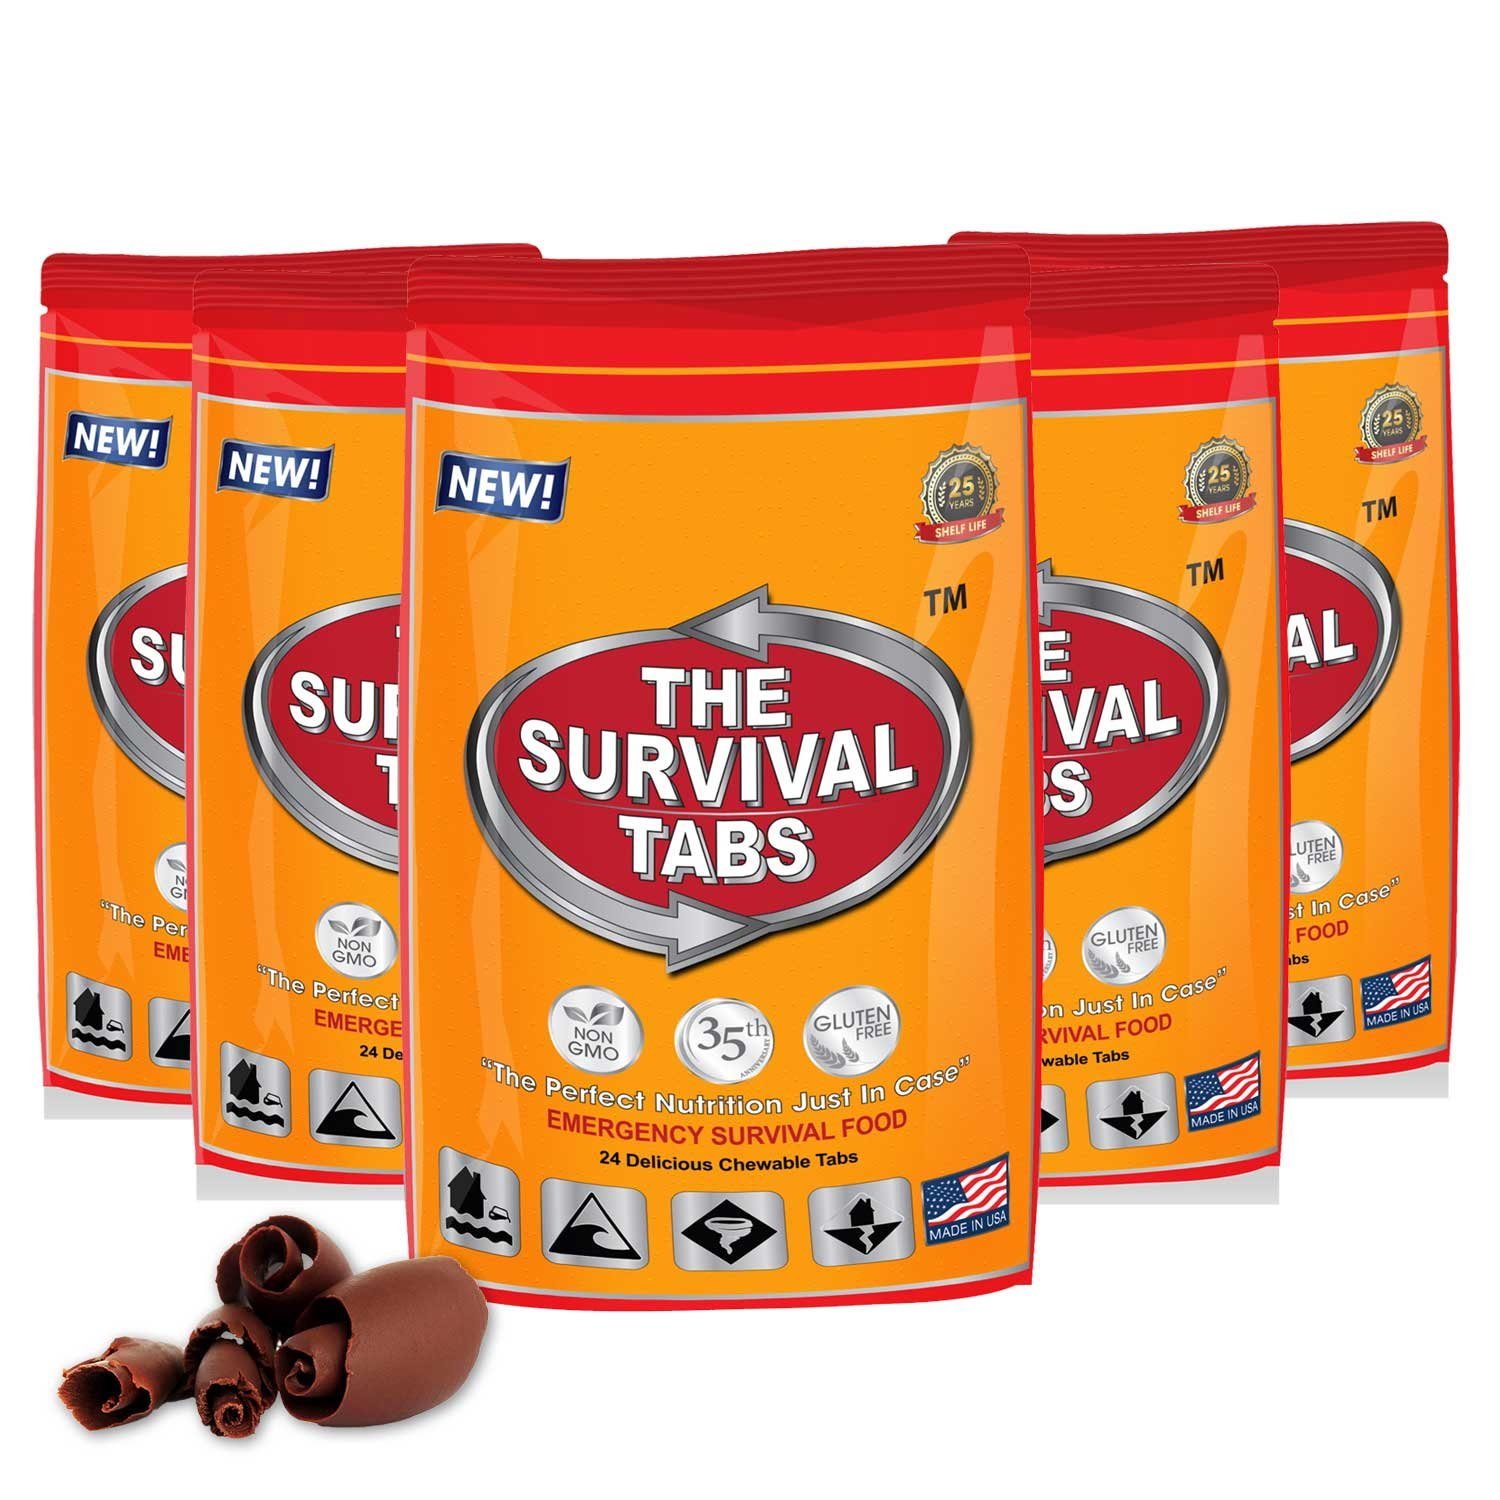 Emergency Food Supply - 10 days Survival Food for Emergency Situation - Gluten Free and Non-GMO 25 Years Shelf Life (120 tabs - Chocolate) by The Survival Tabs